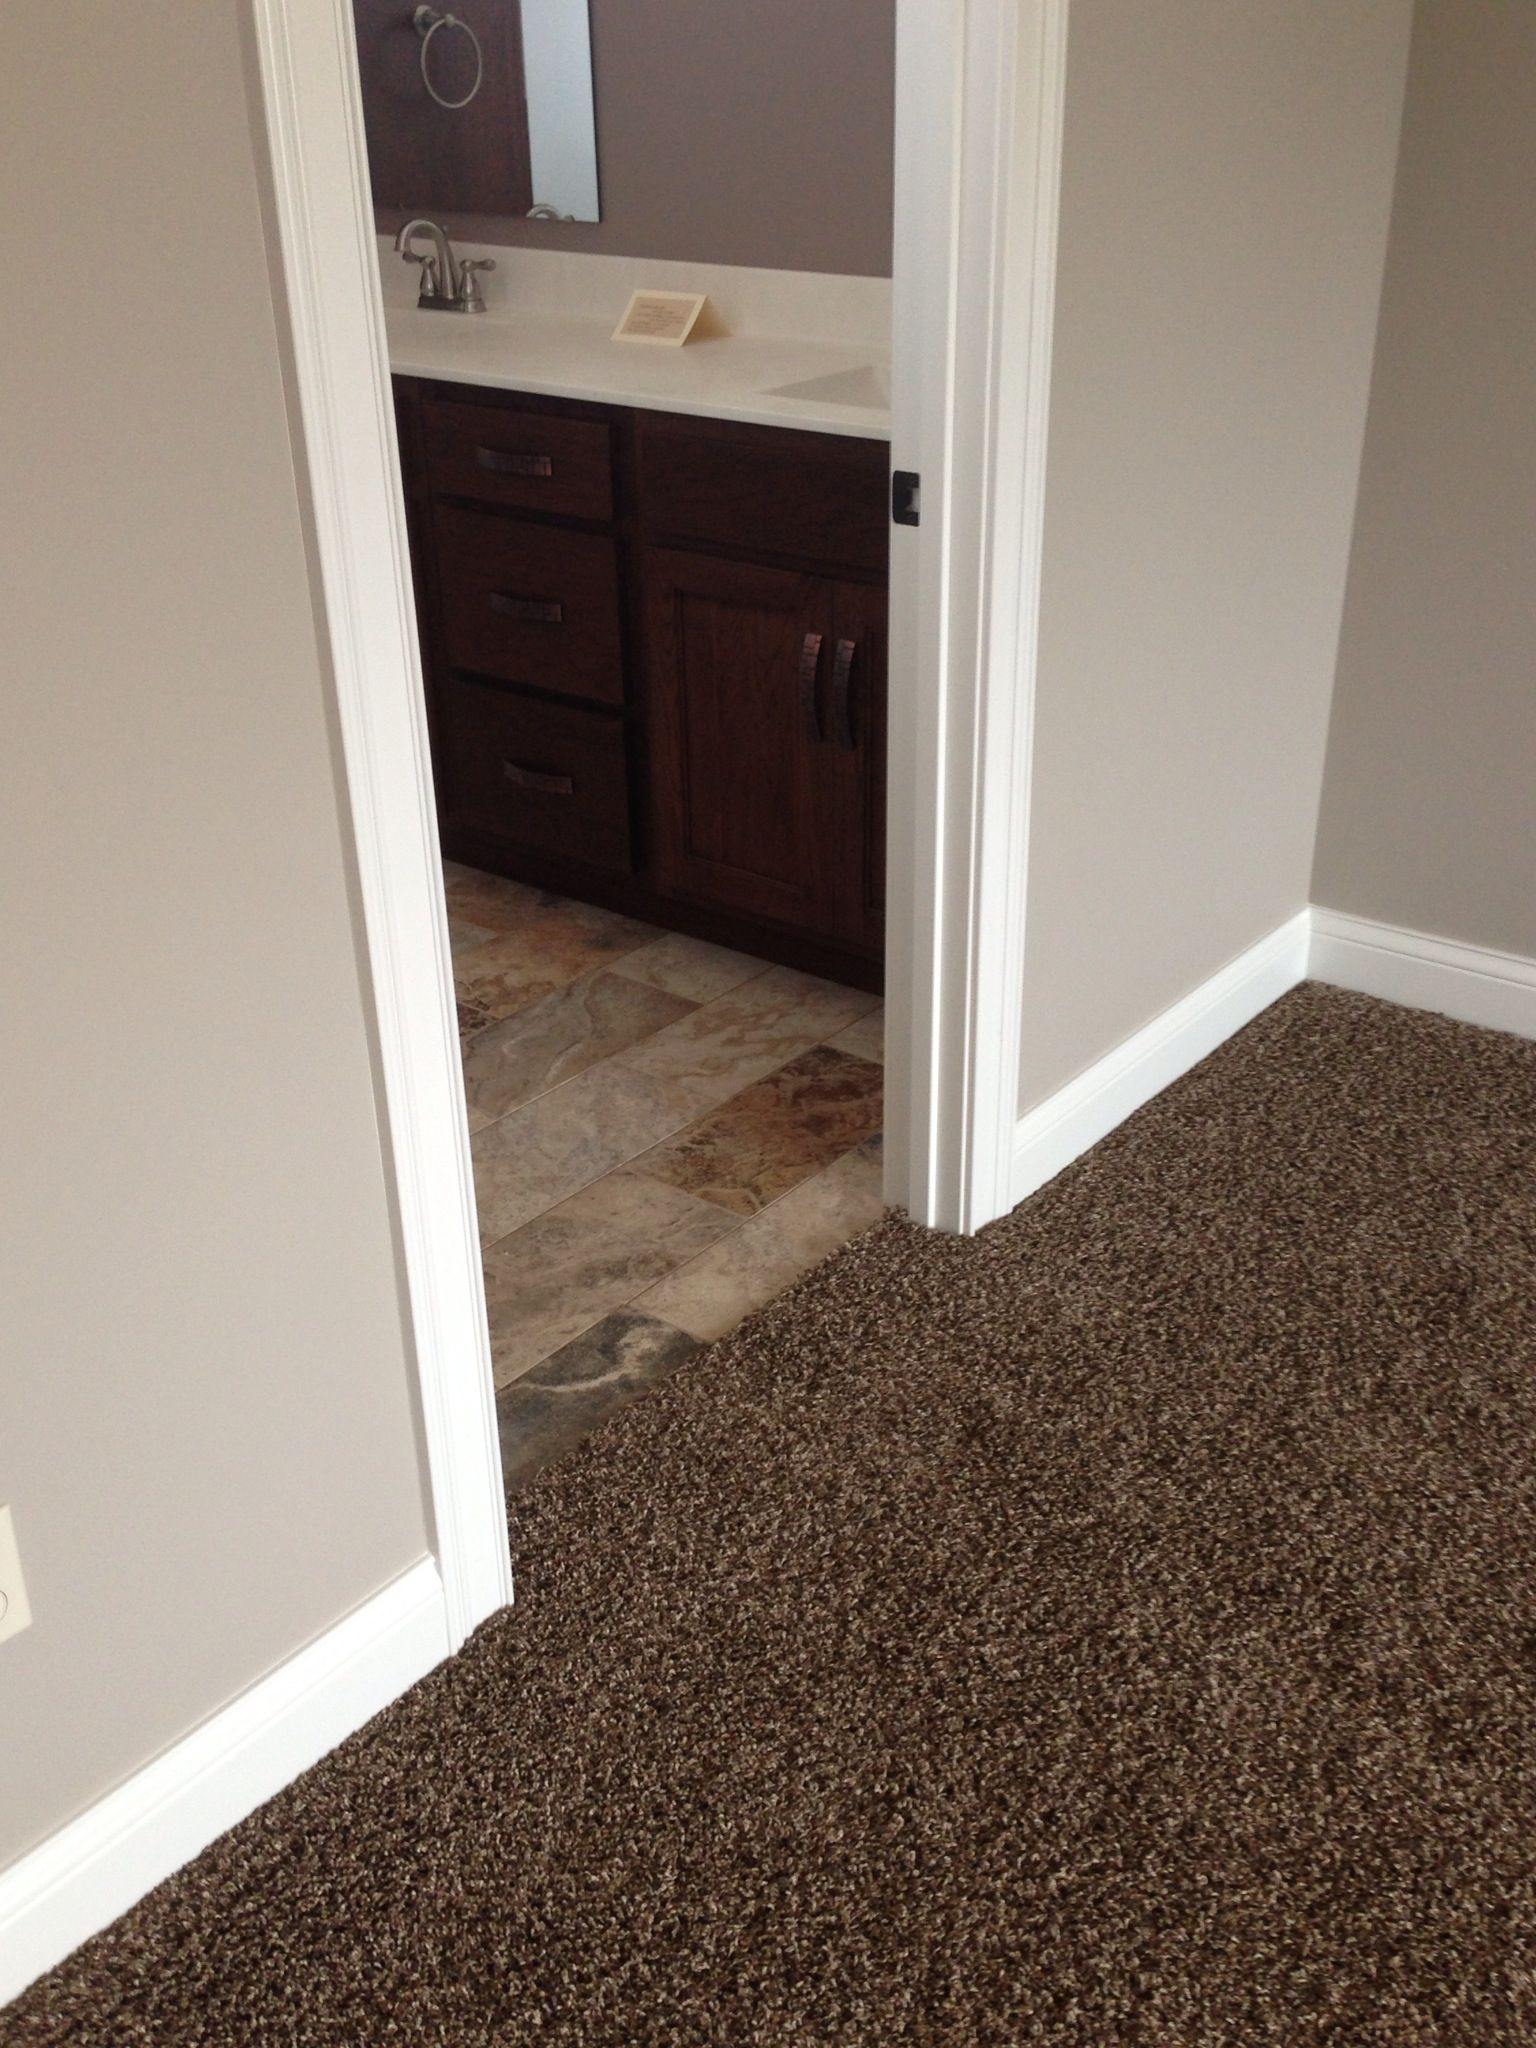 Like carpet looks much darker in this pic and tile colors with the